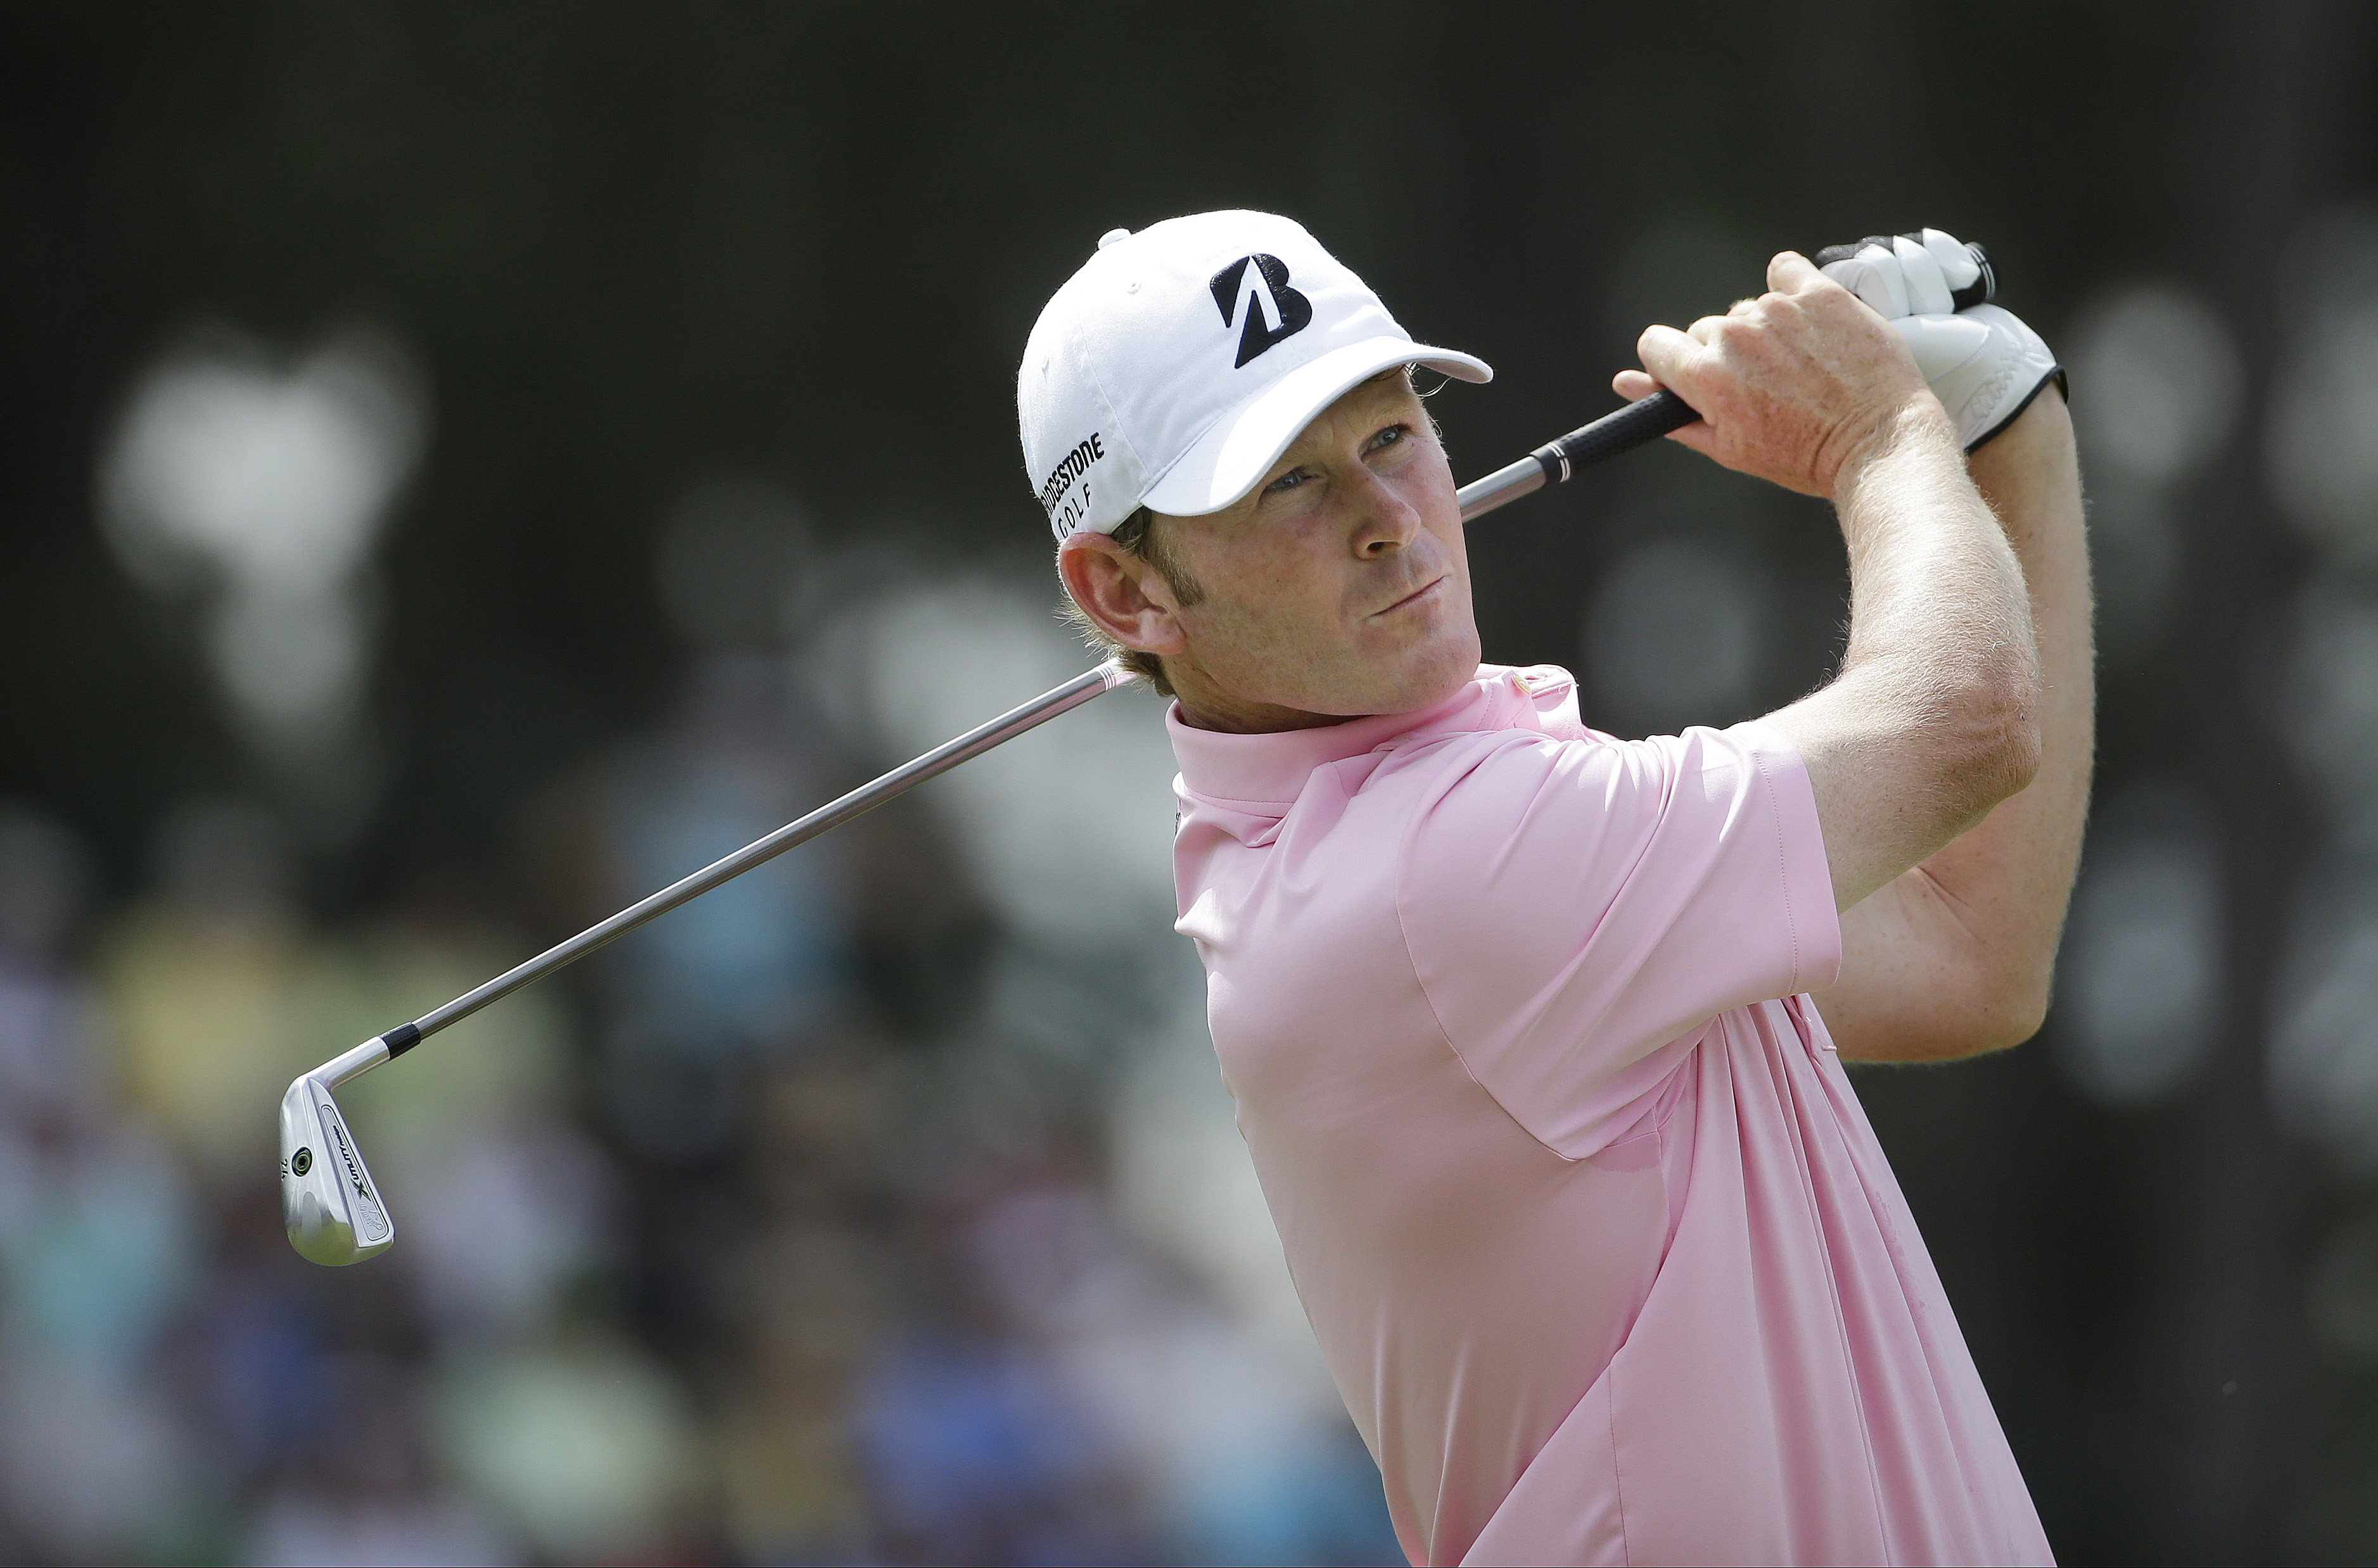 Brett Stegmaier watches his tee shot on the 13th hole during the first round of the U.S. Open golf tournament in Pinehurst, N.C., Thursday, June 12, 2014. (AP Photo/David Goldman)